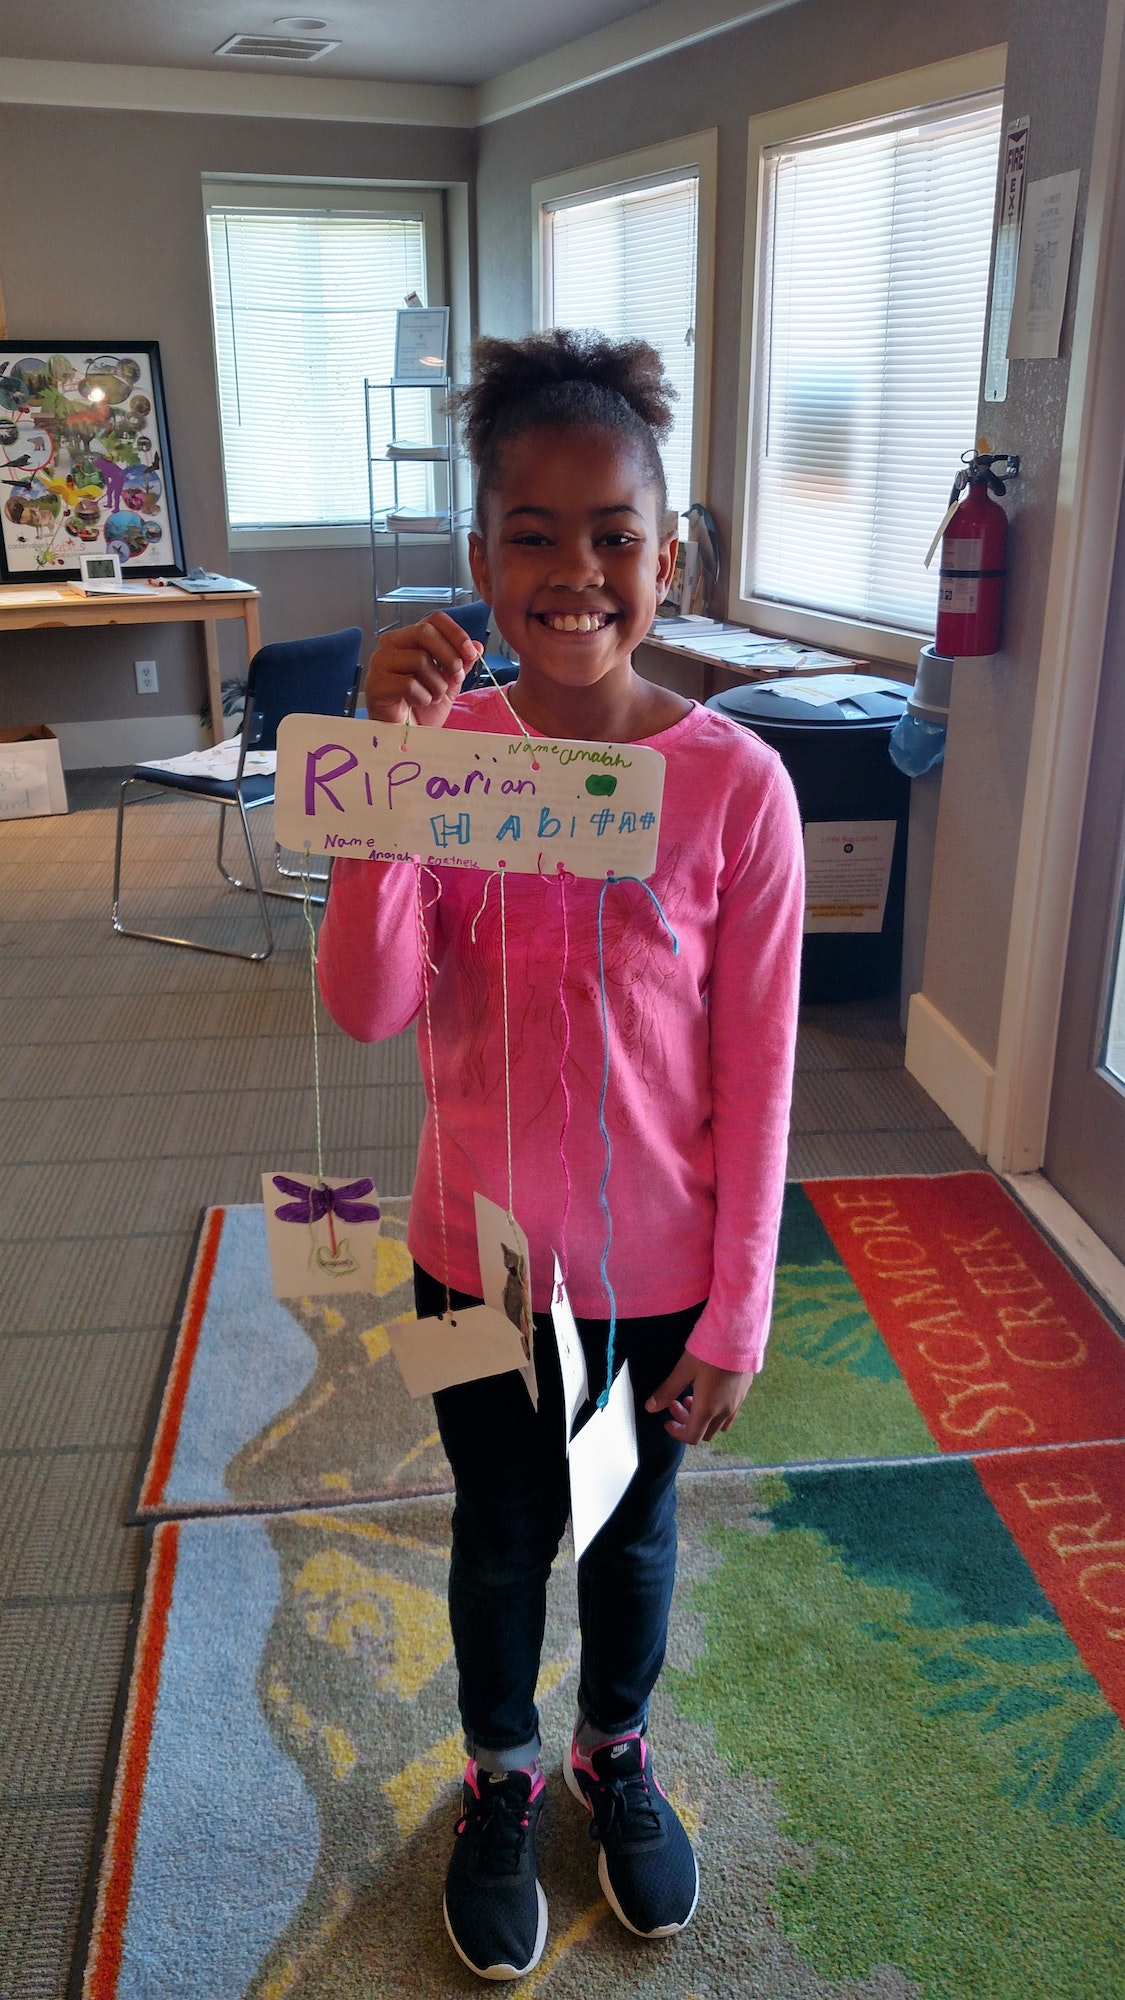 Homeschool student showing her riparian habitat craft